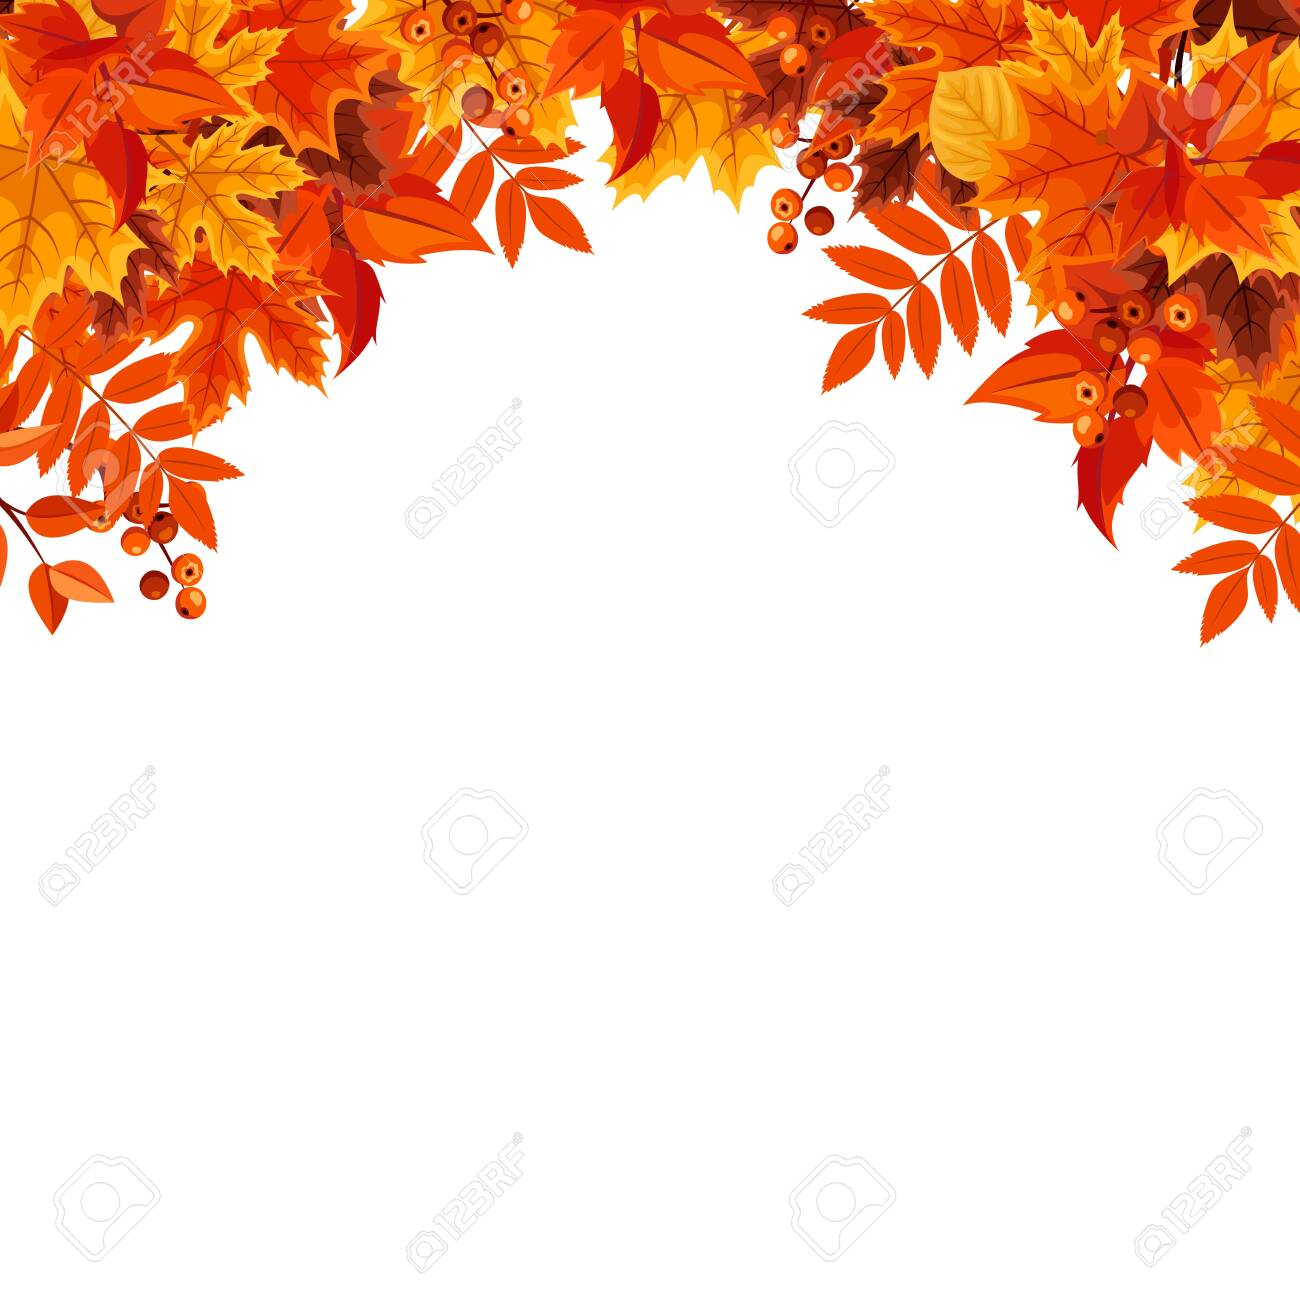 Vector frame background with orange autumn leaves. - 154812547